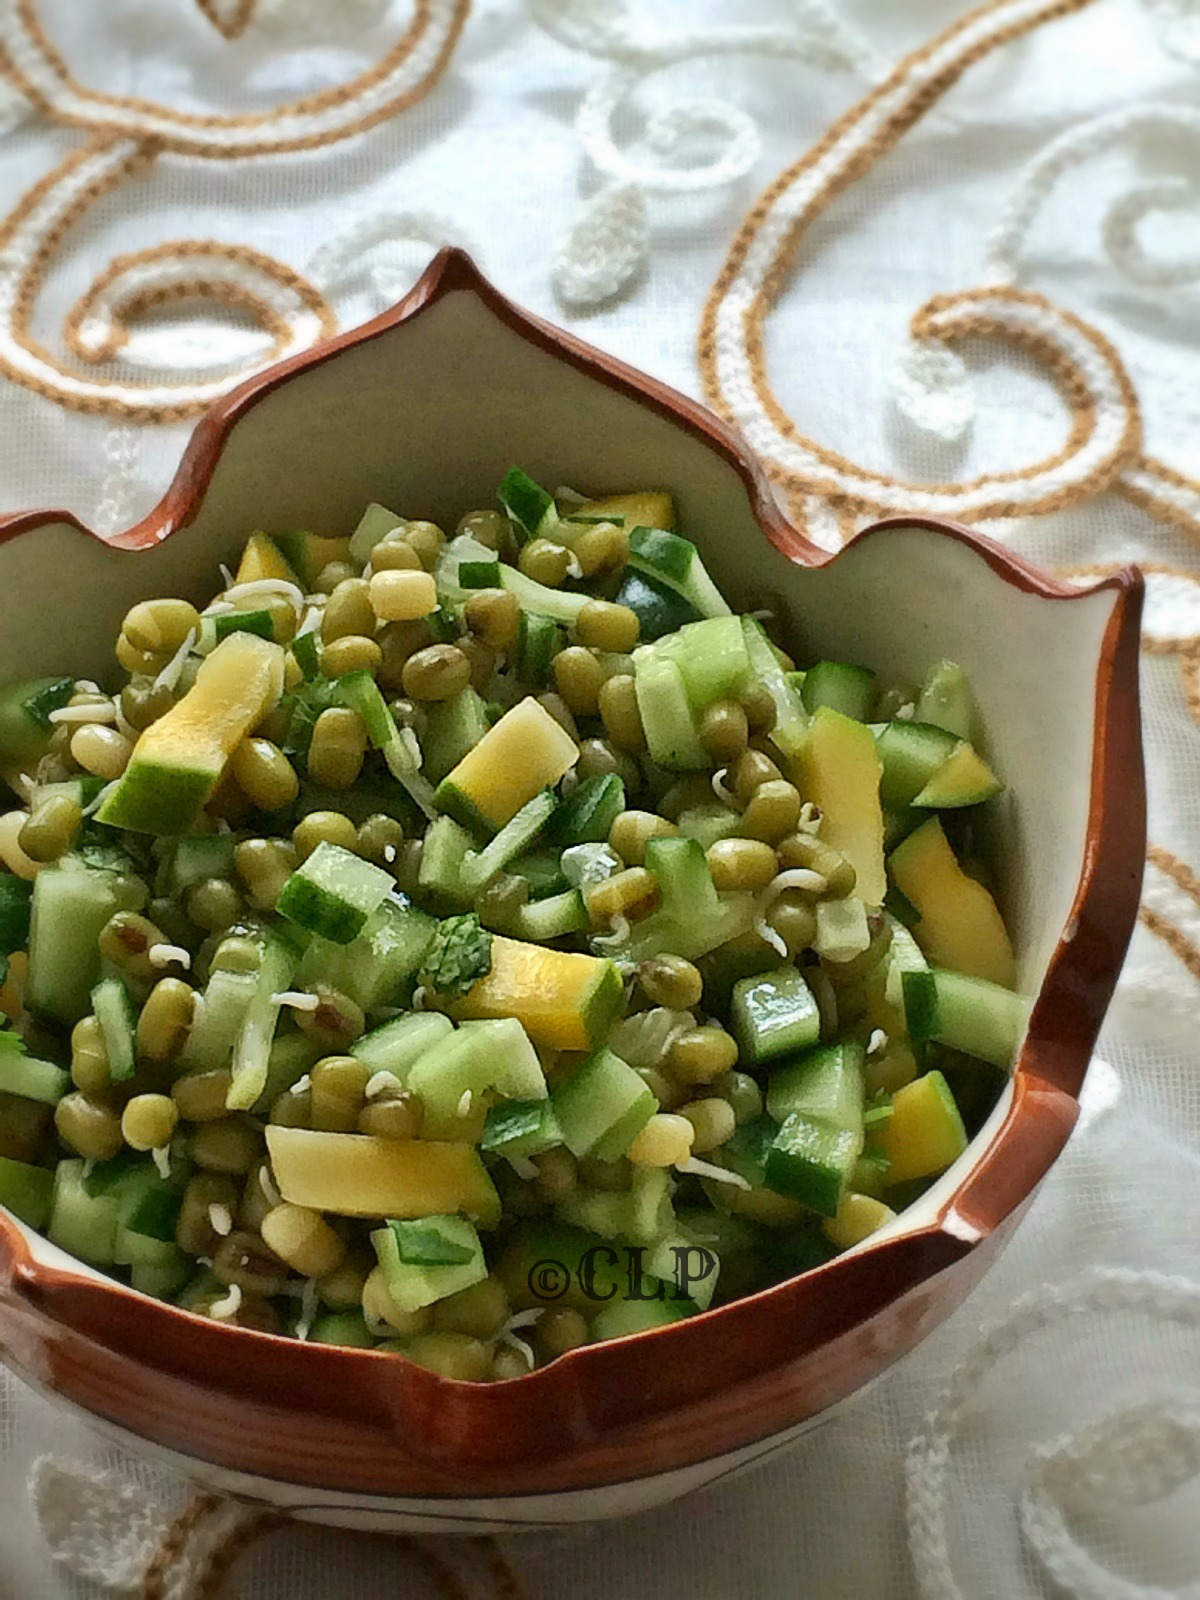 Sprouts salad without oil